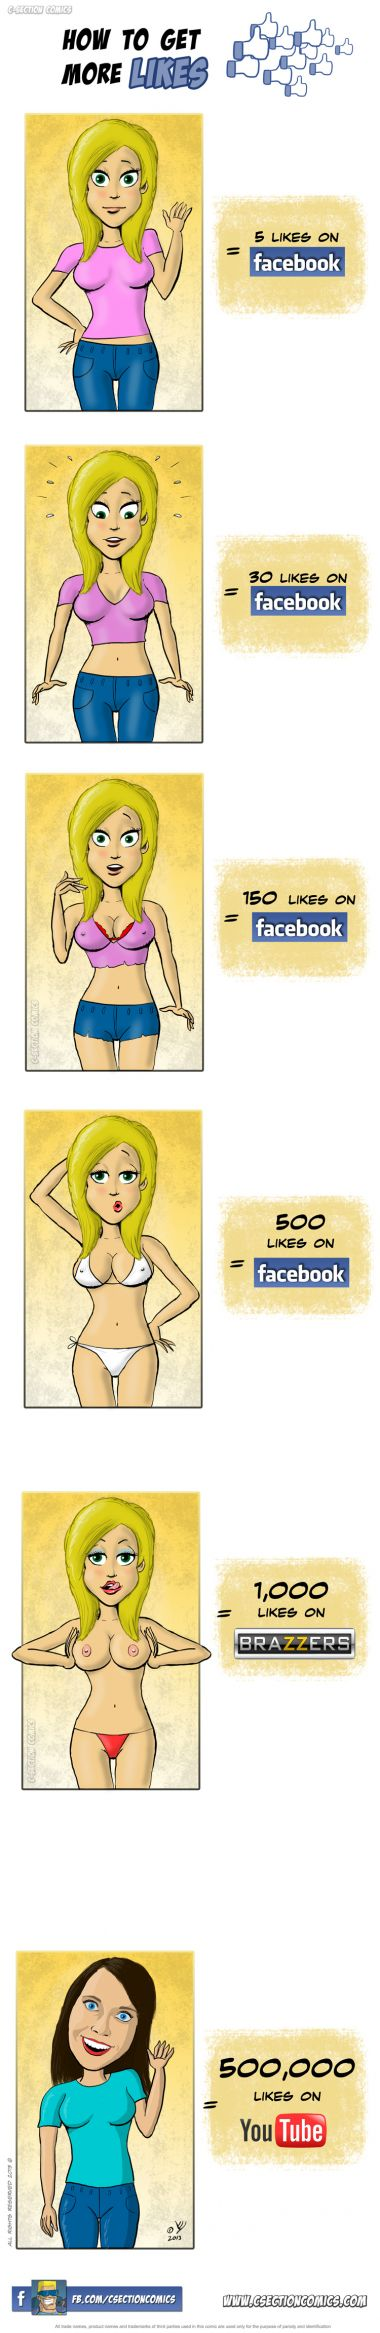 How to Get More Likes - by C-Section Comics